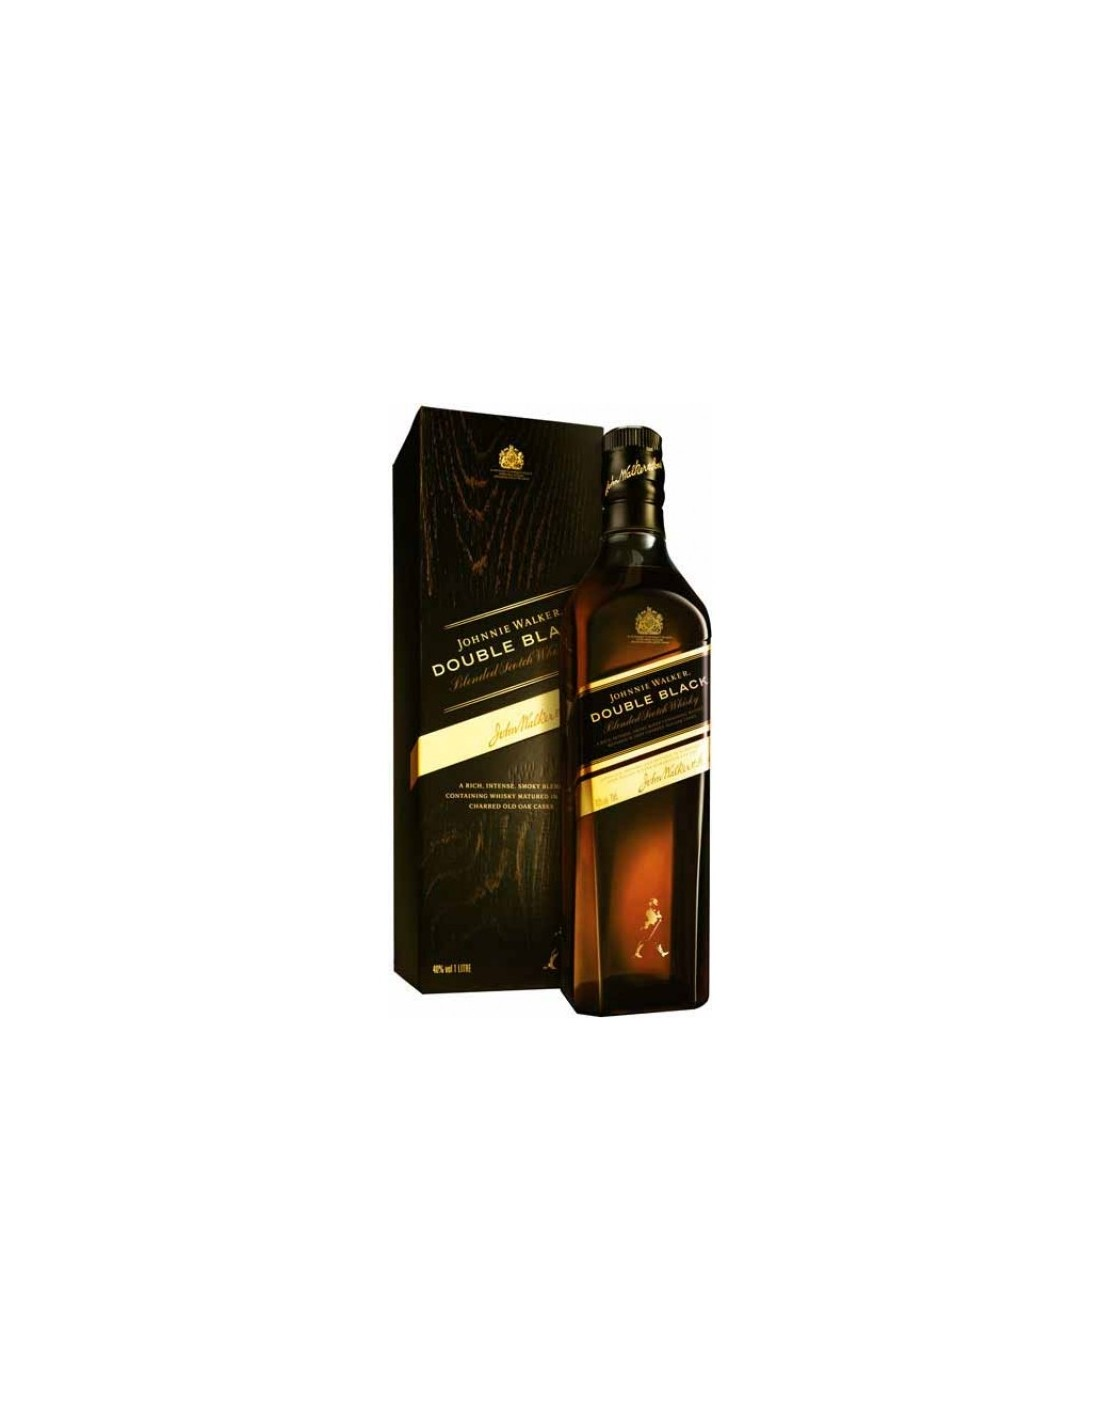 Blended Whisky Johnnie Walker Double Black, 40% alc., 0.7L, Scotia